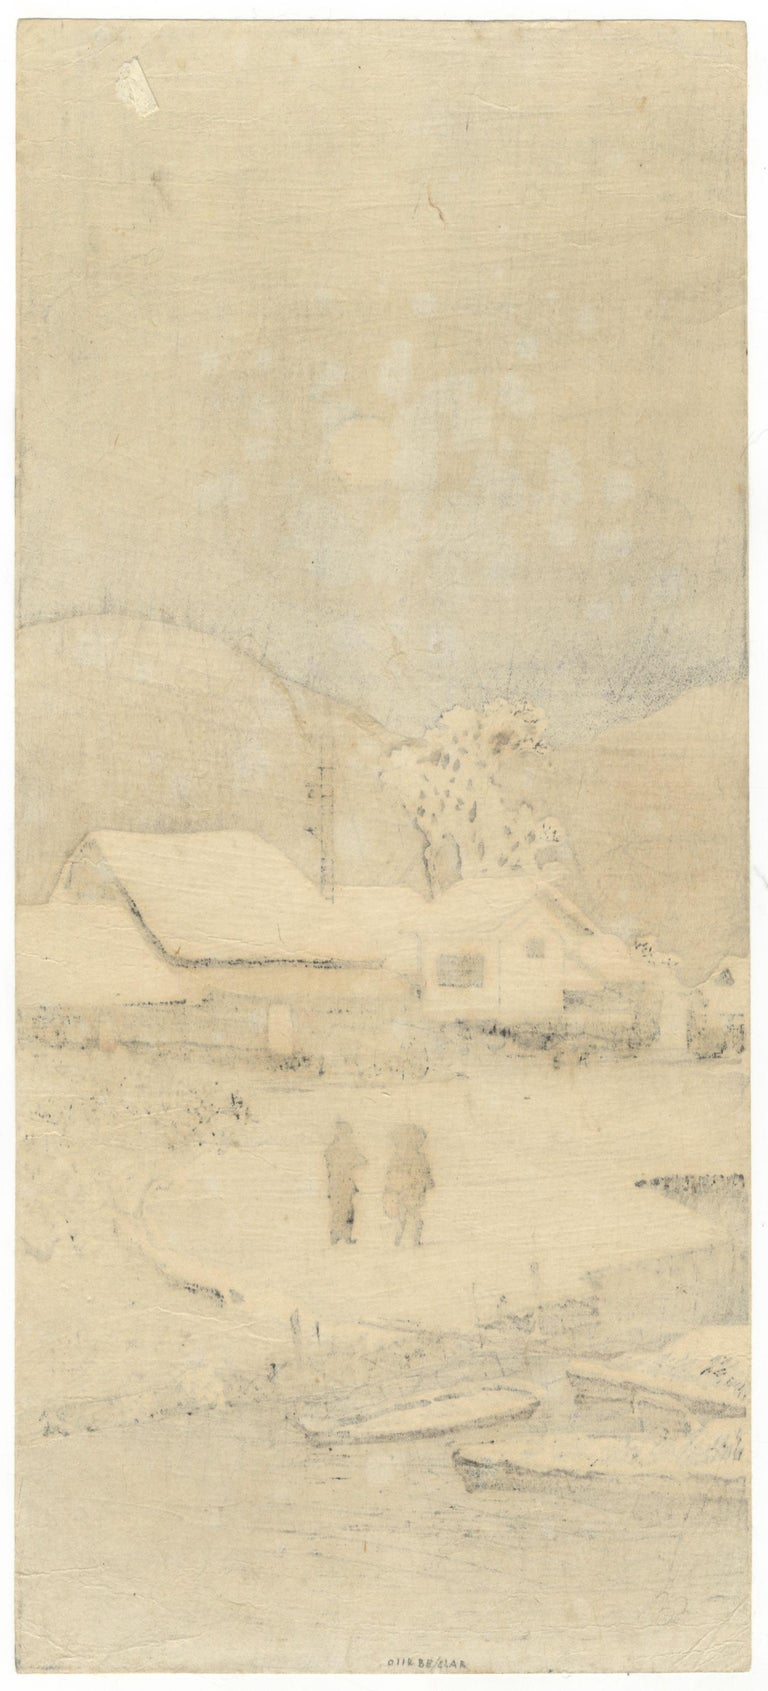 Artist: Shotei Takahashi (1871-1945) Title: Nihonmatsu in Winter Date: Early 20th century Dimensions: 17 x 38 cm  A snow scene in the town of Nihonmatsu in Fukushima prefecture. Two silhouettes pause by the canal, a lantern in one of their hands